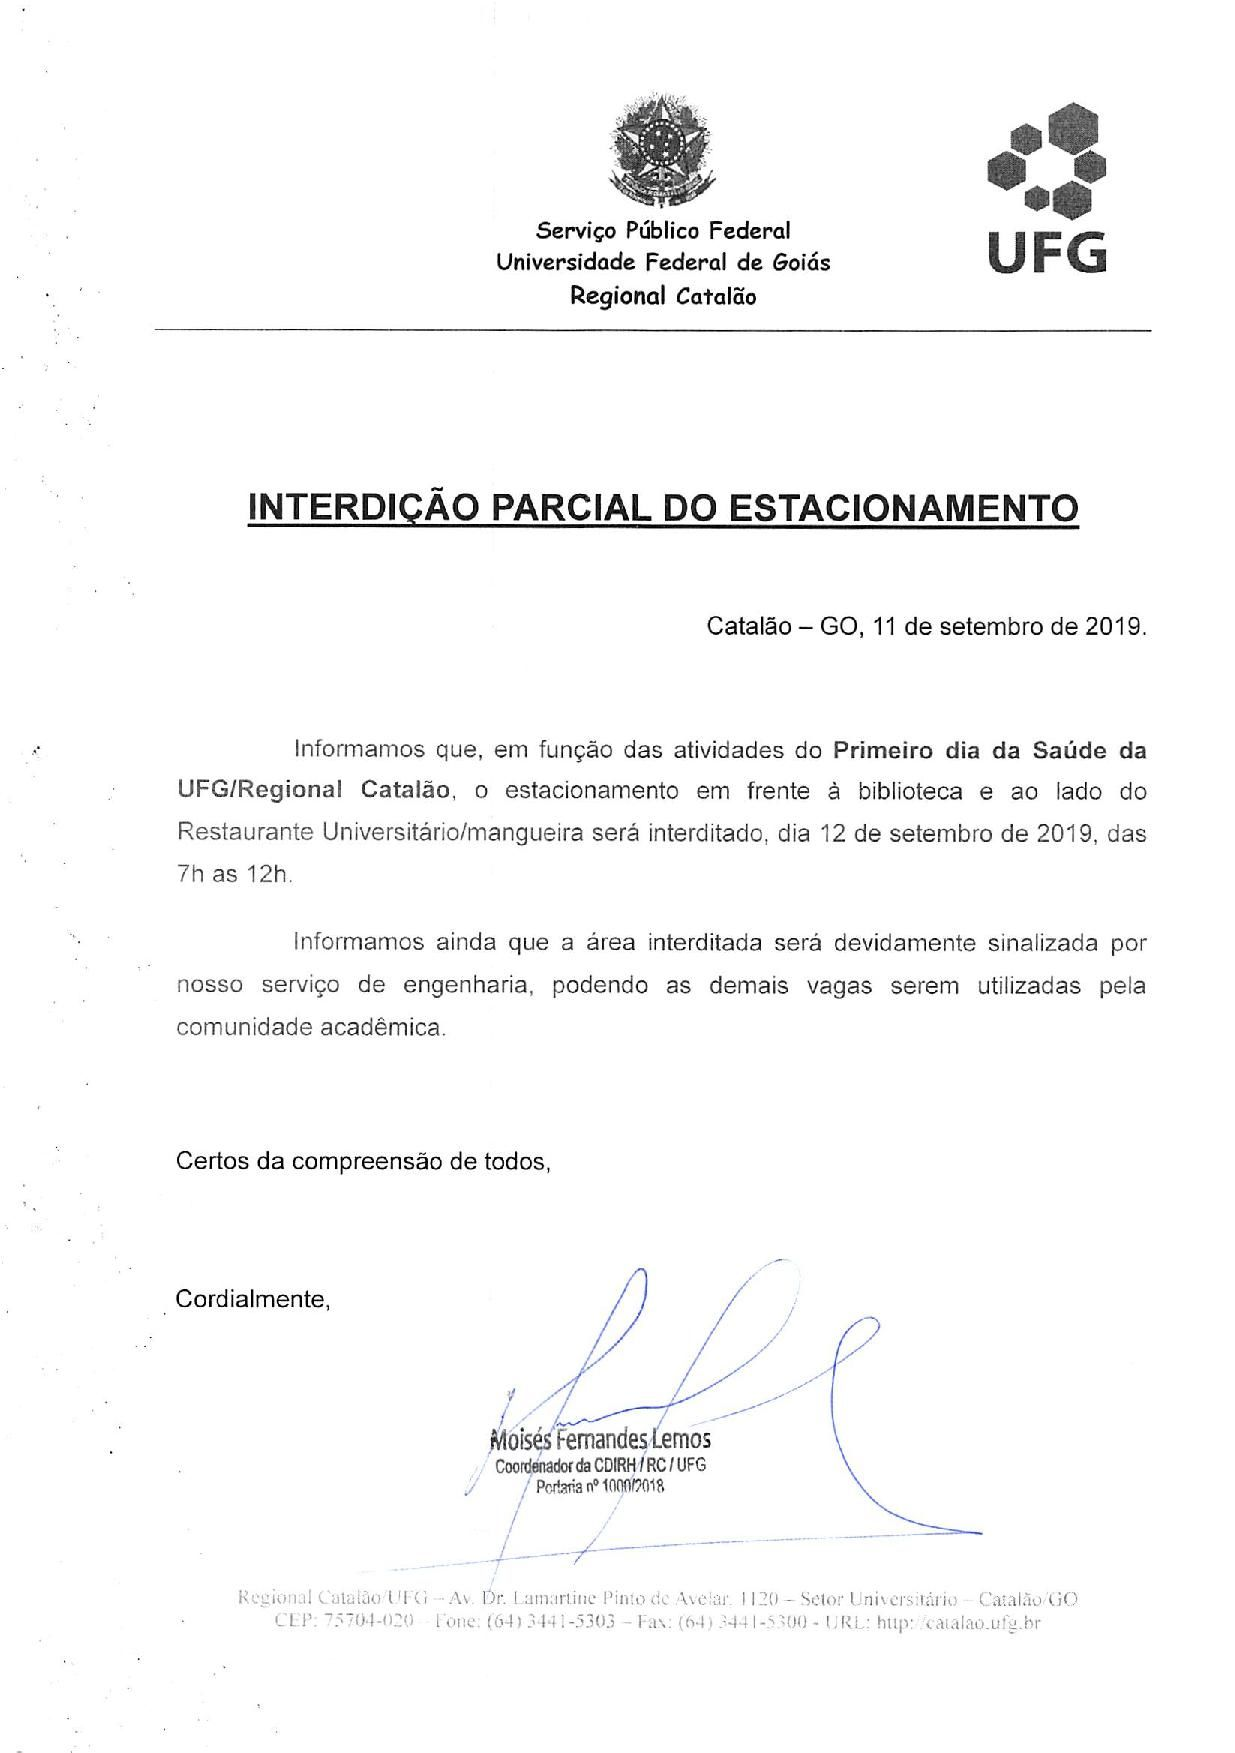 Interdição Parcial do Estacionamento